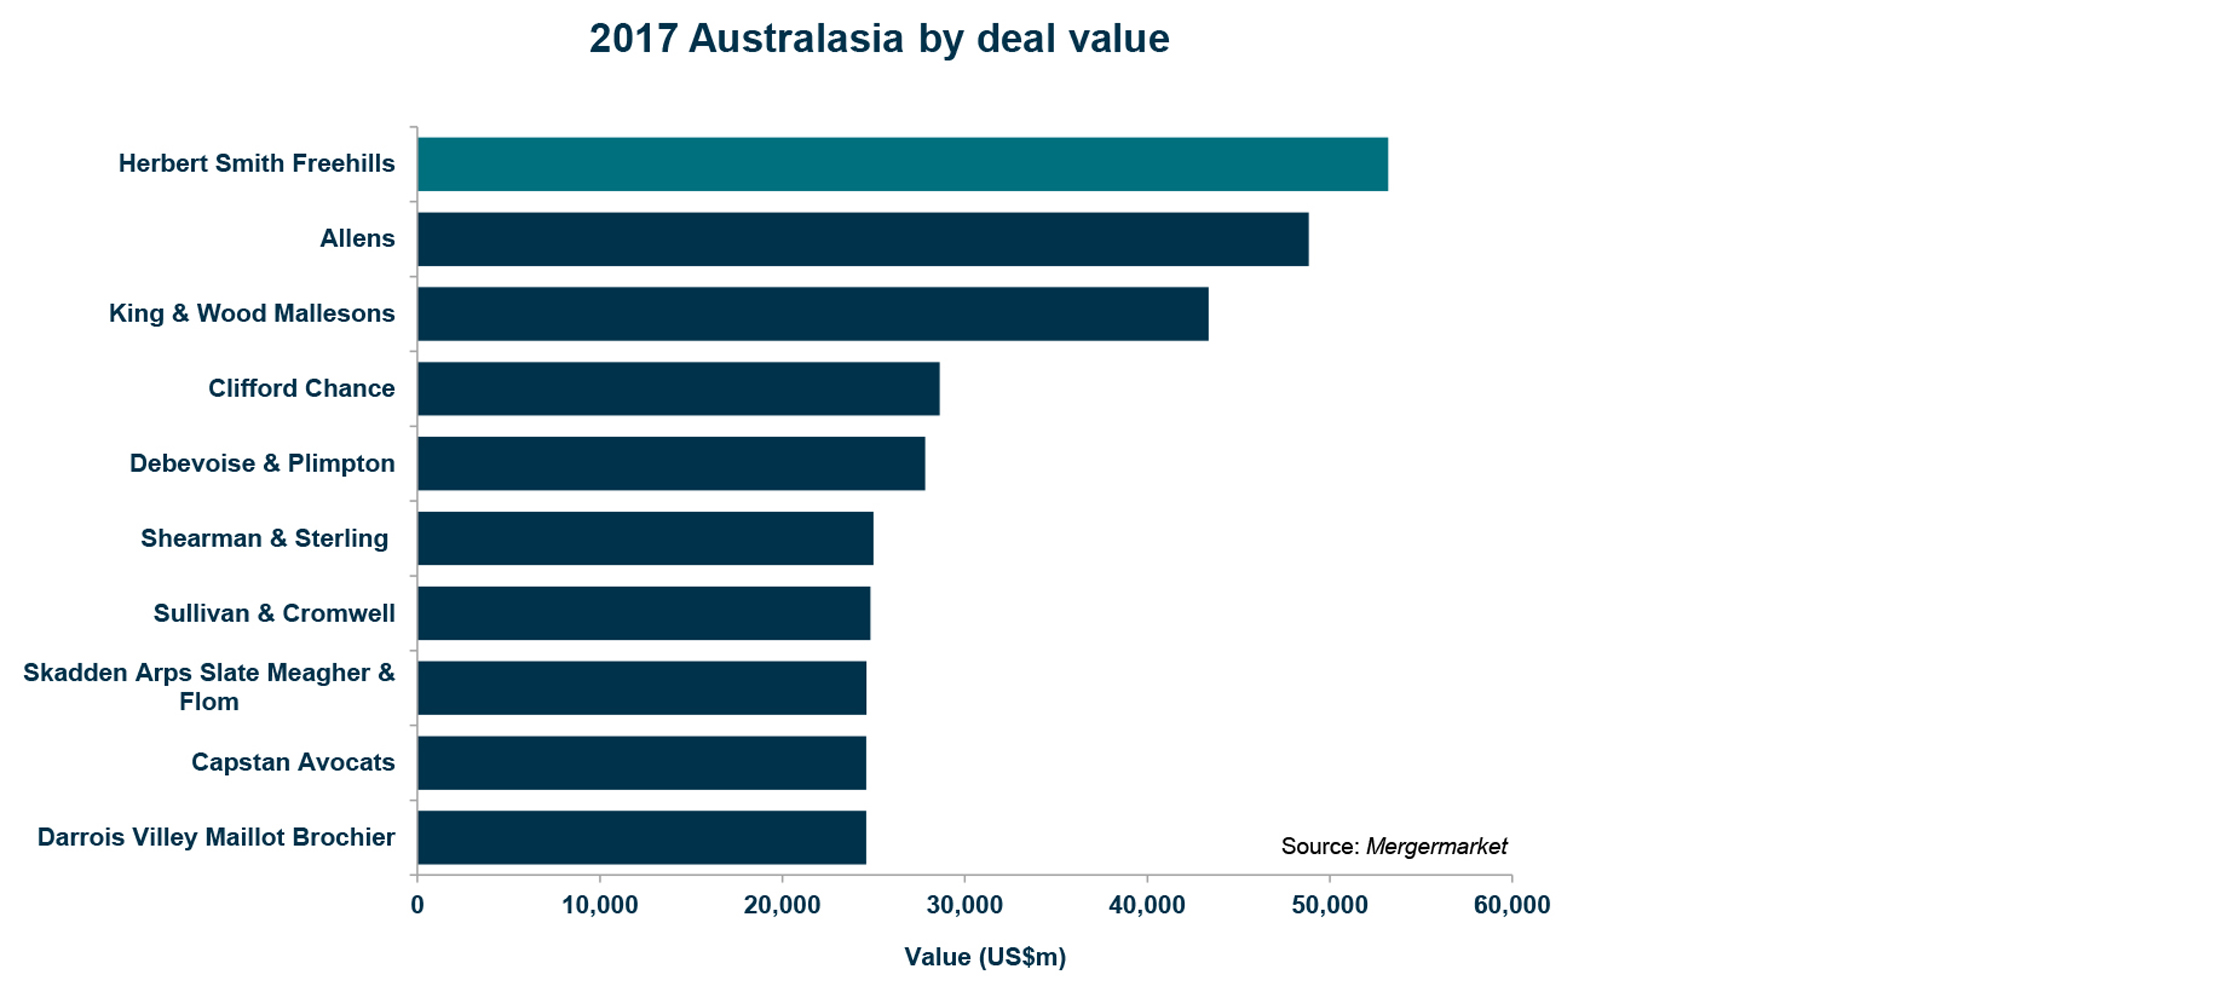 Total deals by value - Mergermarket